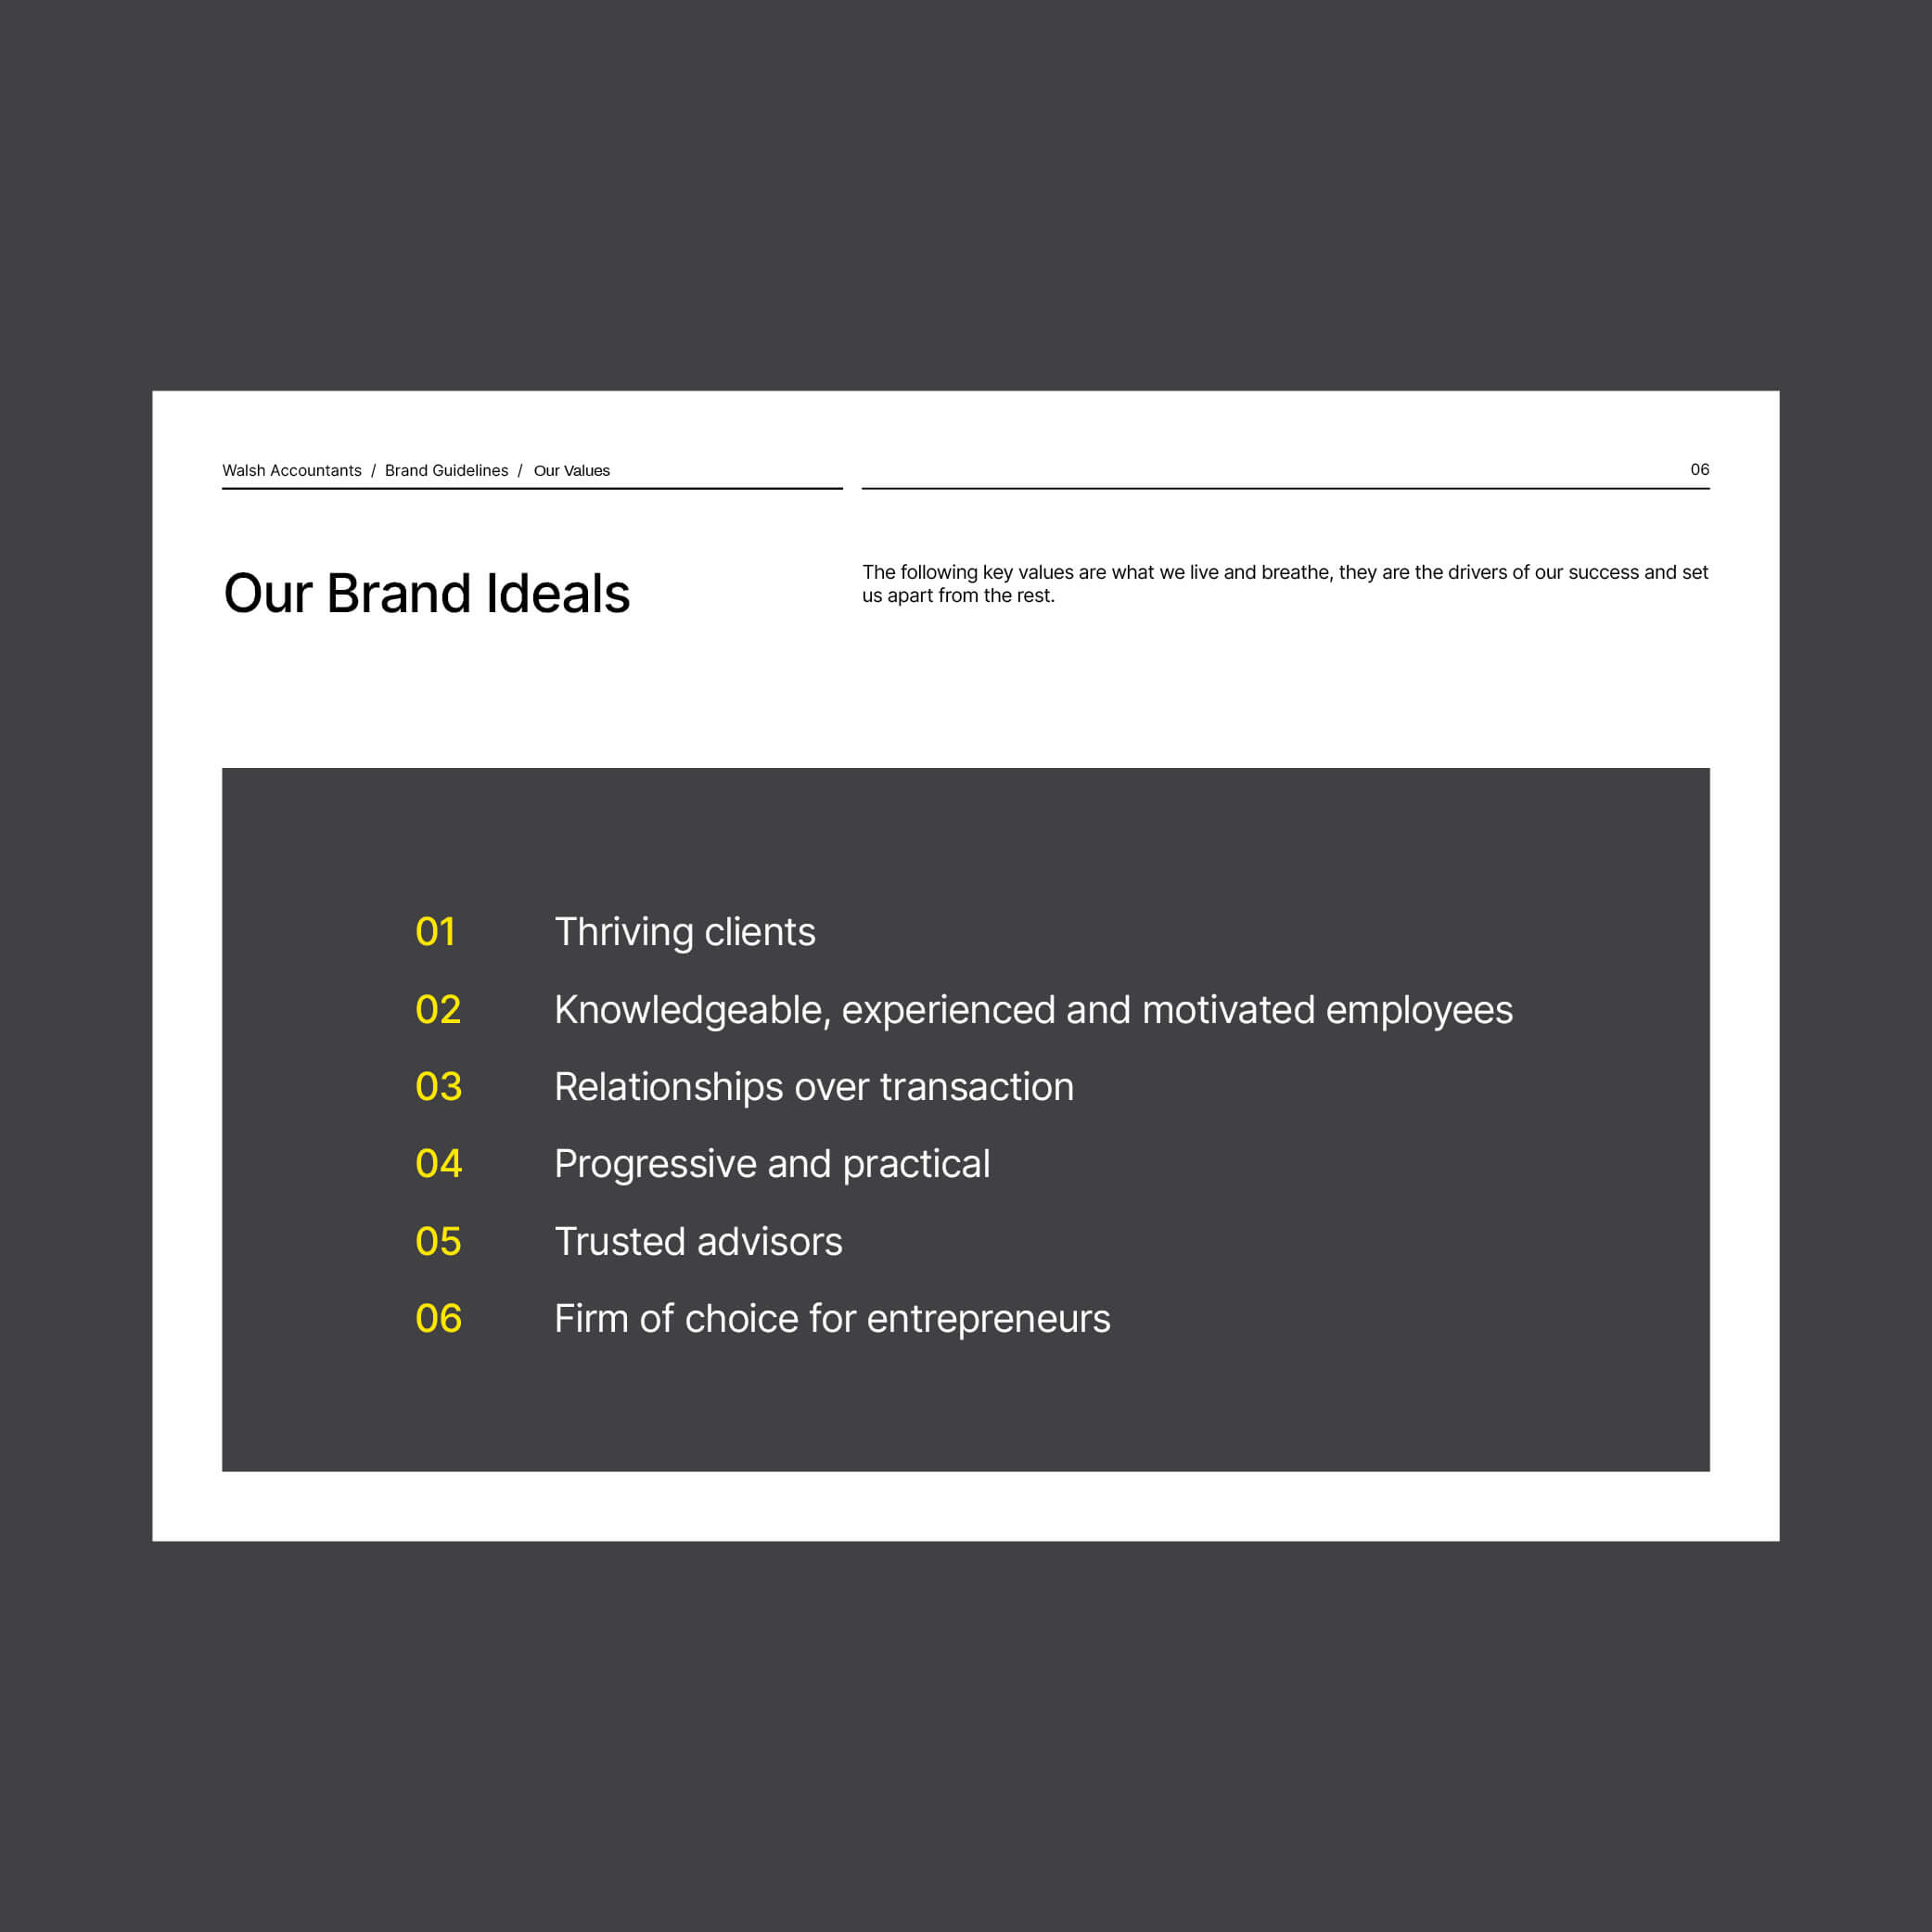 Walsh-Brand-Guidelines5